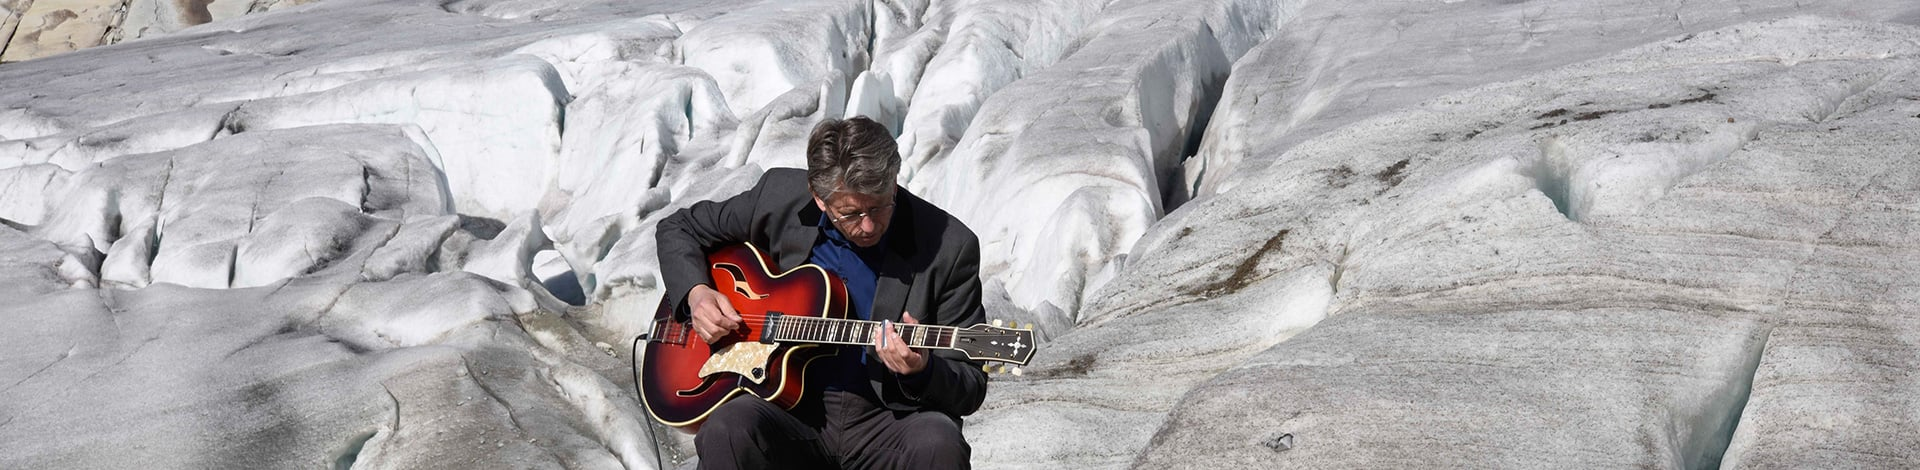 Immagine Blues for Glaciers, George Steinmann